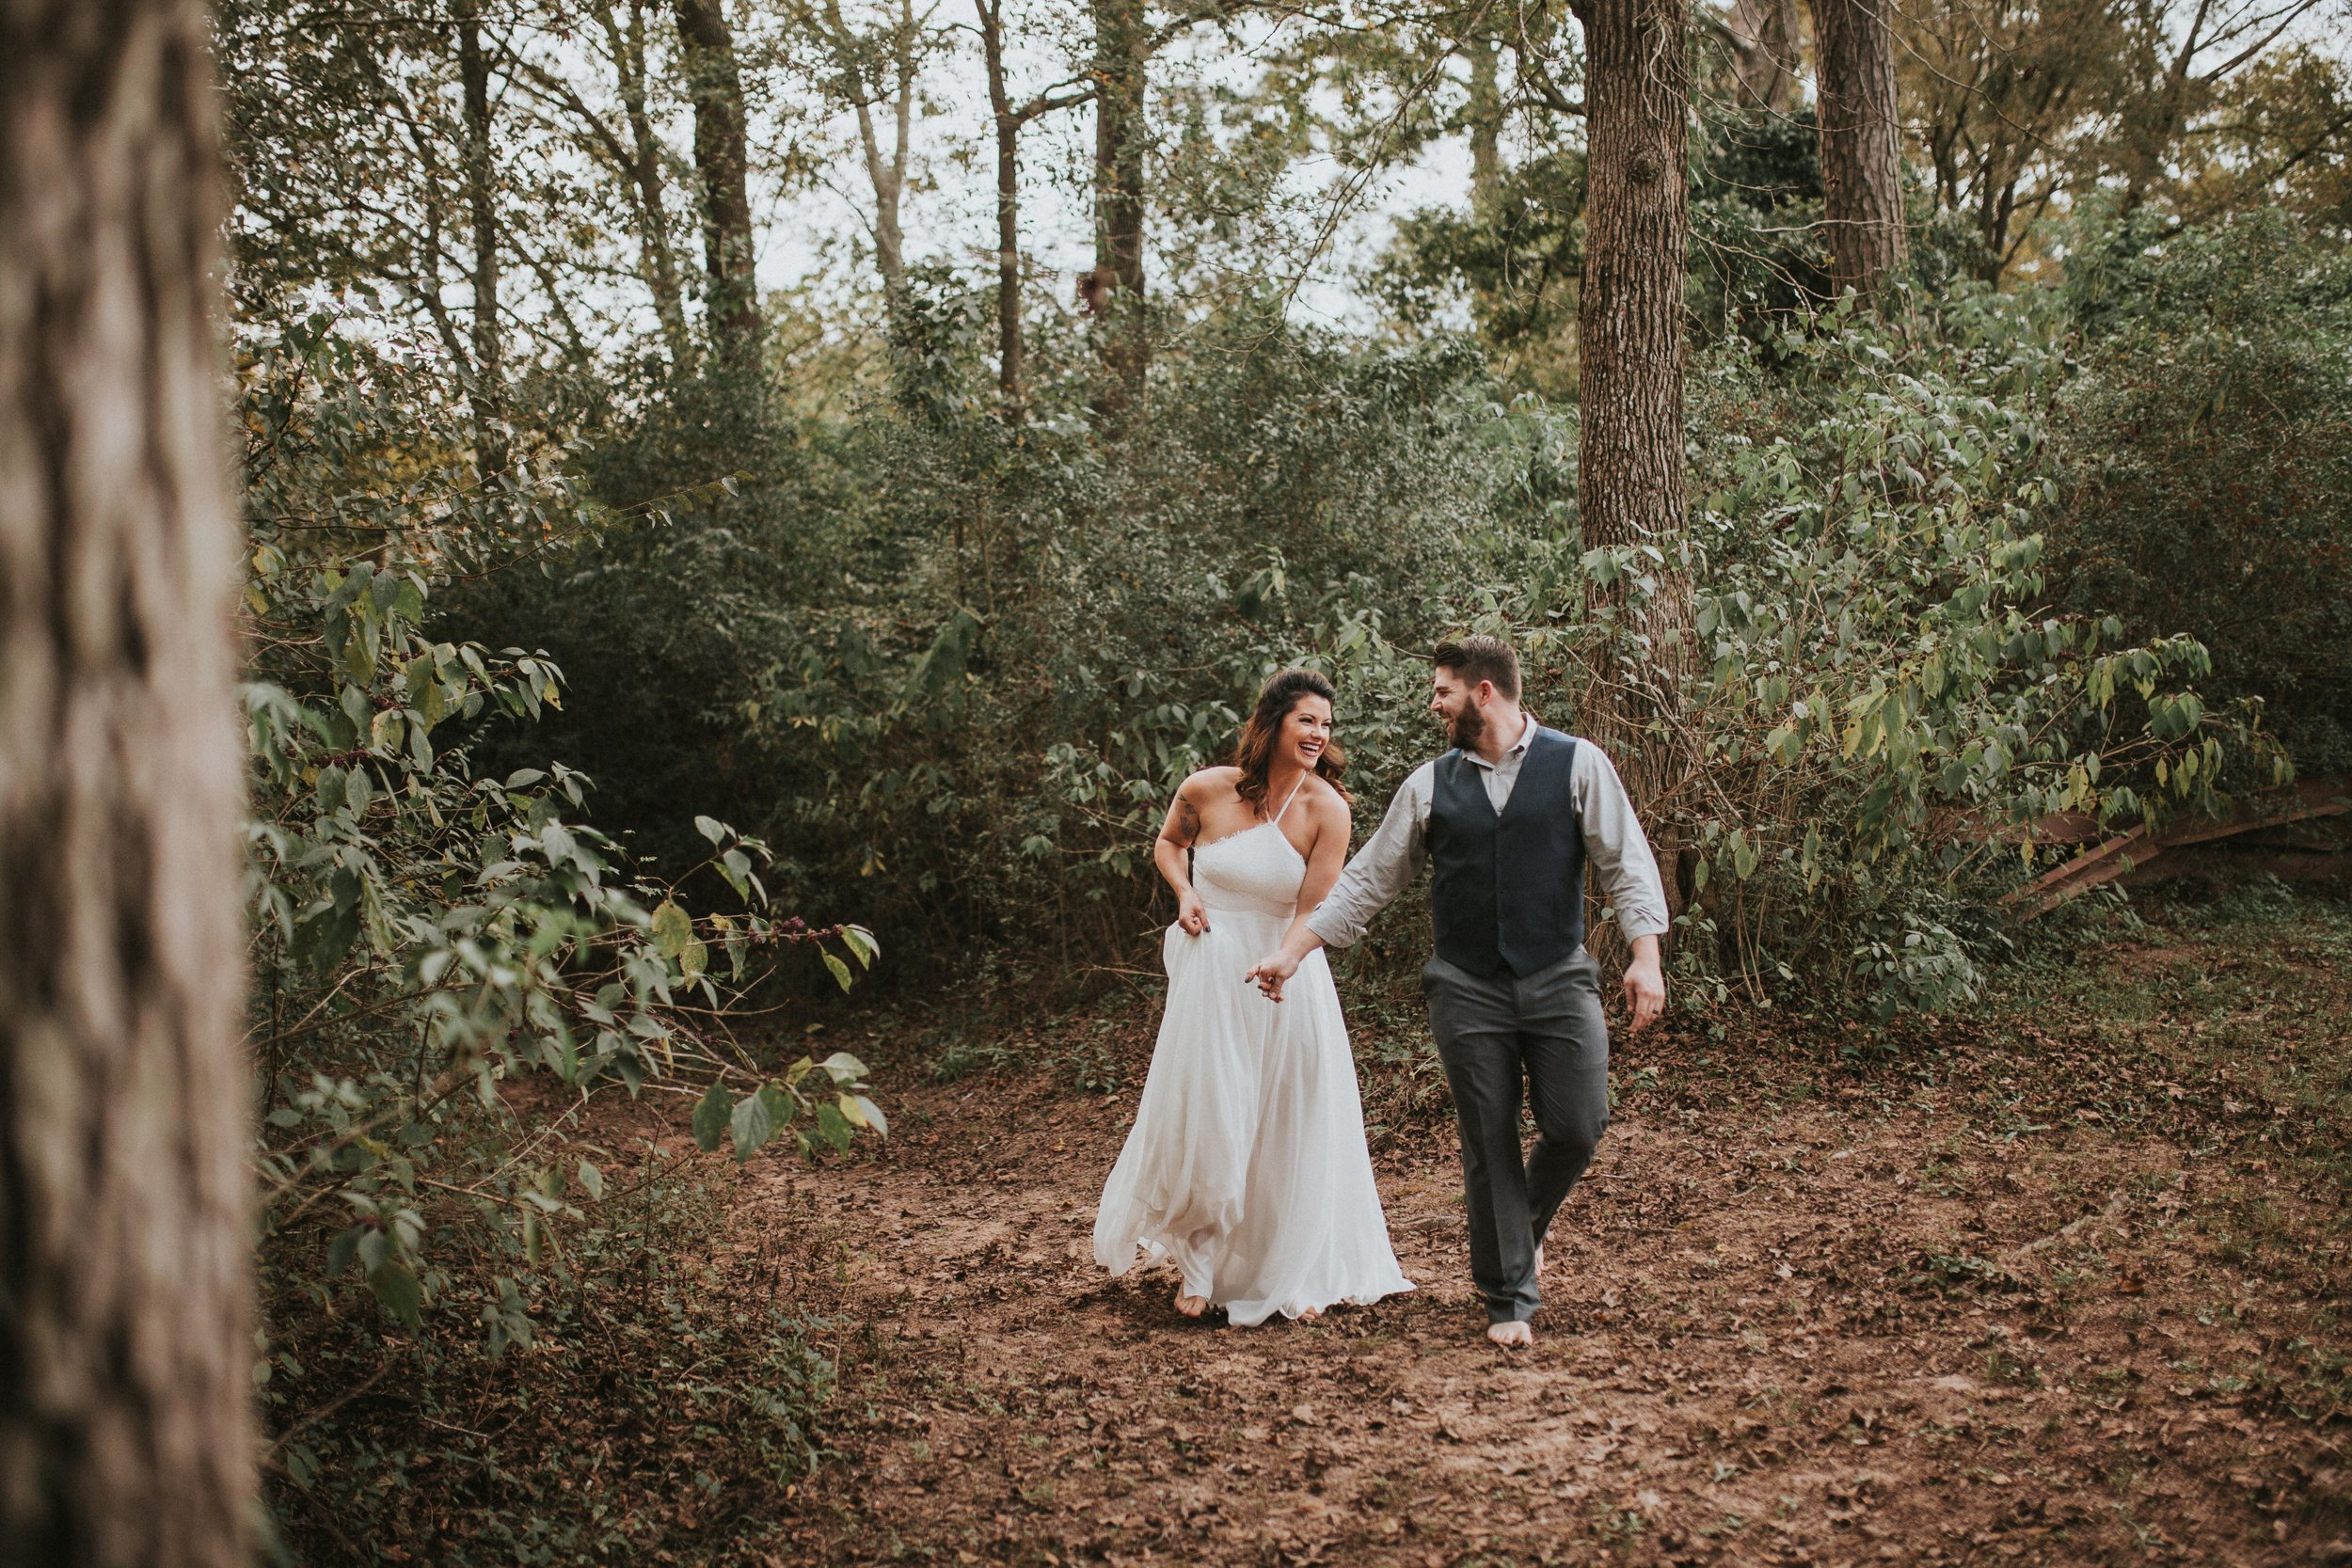 Vow Renewal in Magnolia Texas - Madeleine Frost Wedding Photographer - Sized for Blog-40.jpg